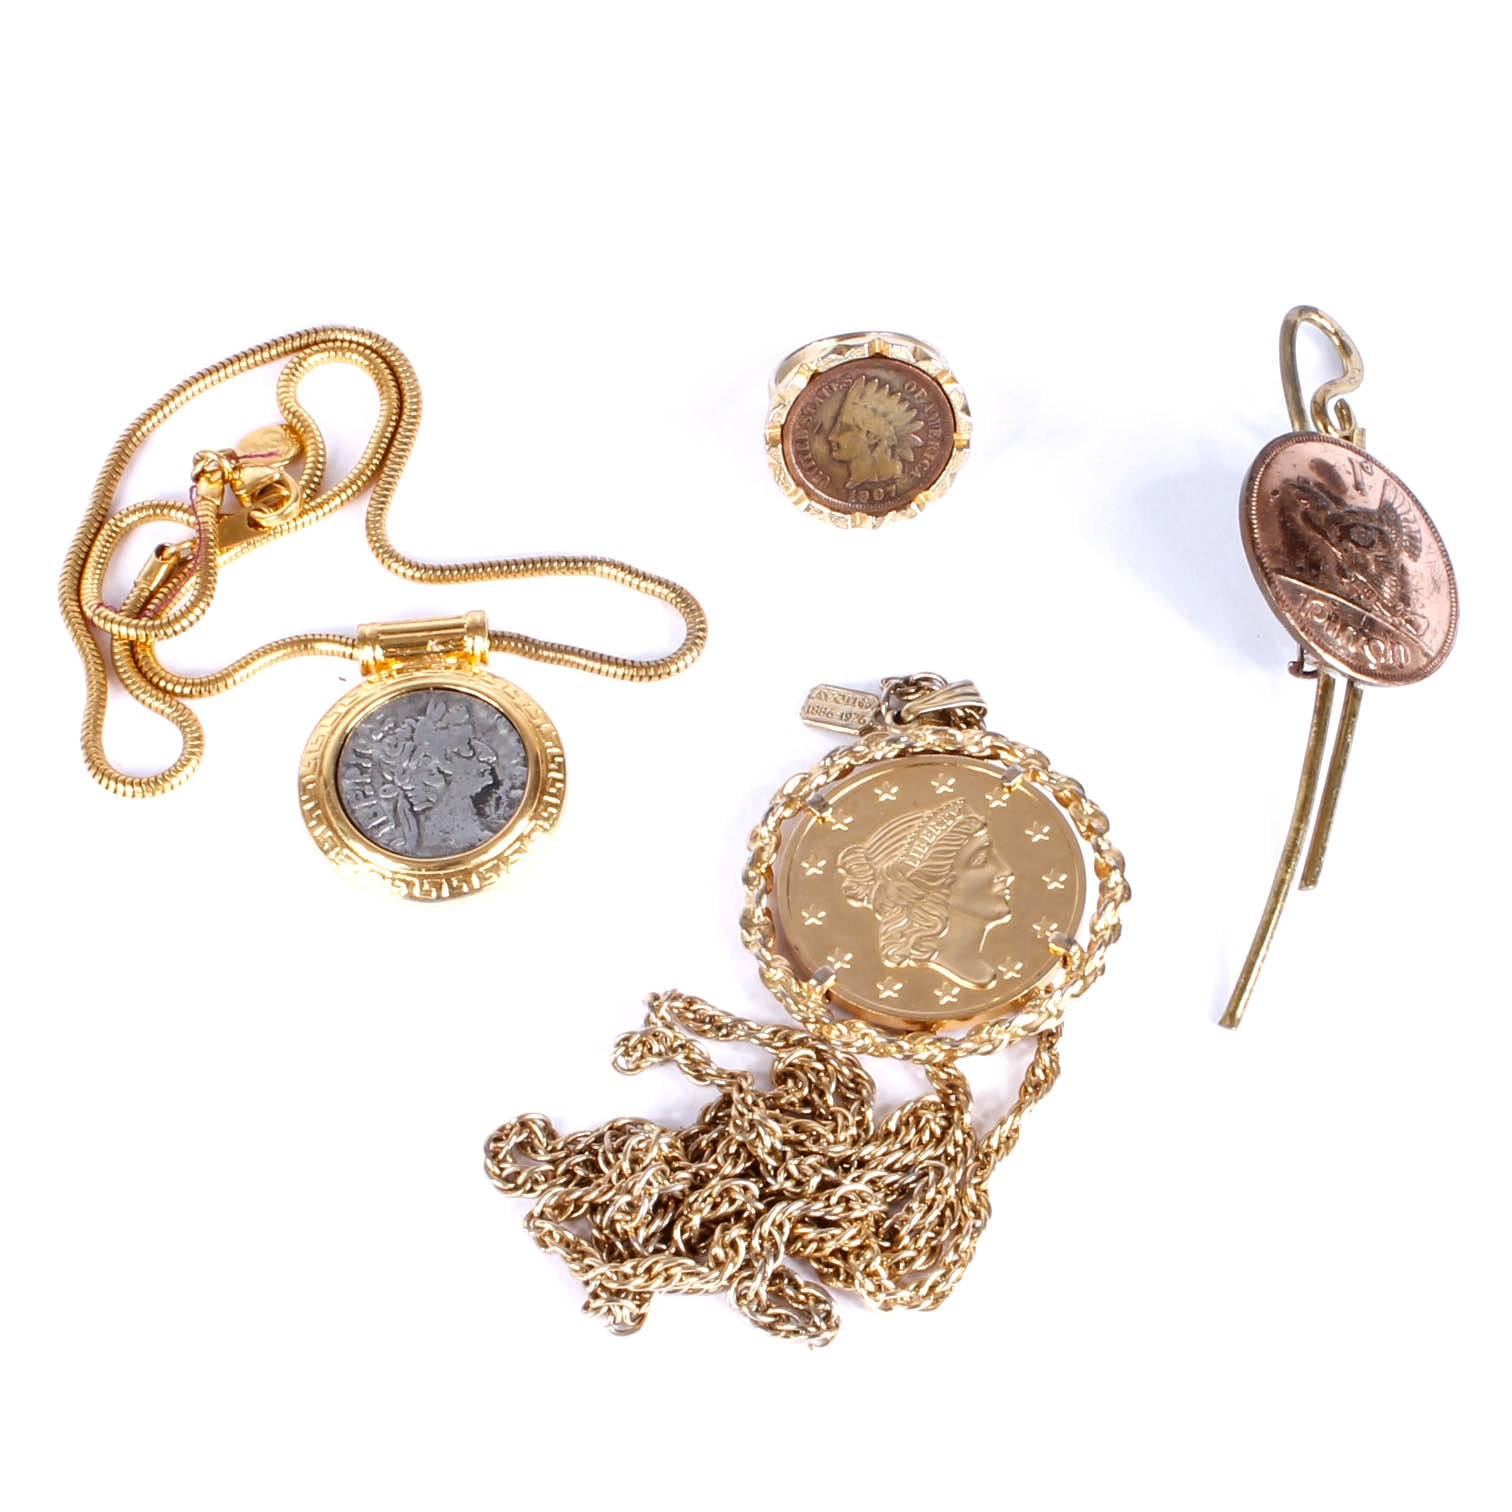 Variety of Gold Tone Costume Jewelry with Coins